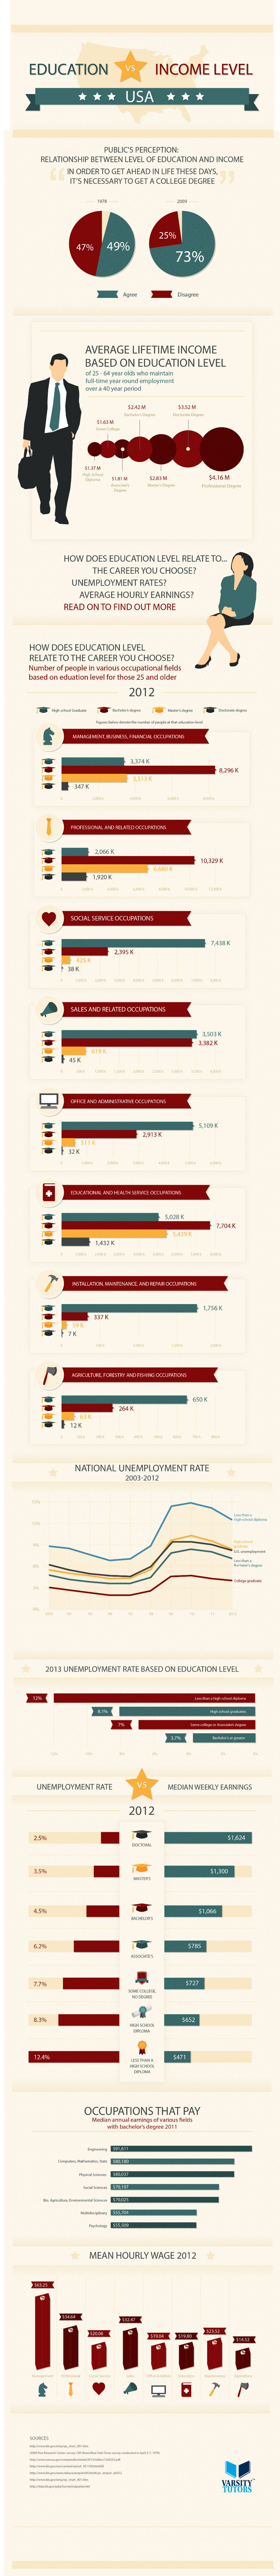 Education Vs. Income Level in The USA Infographic